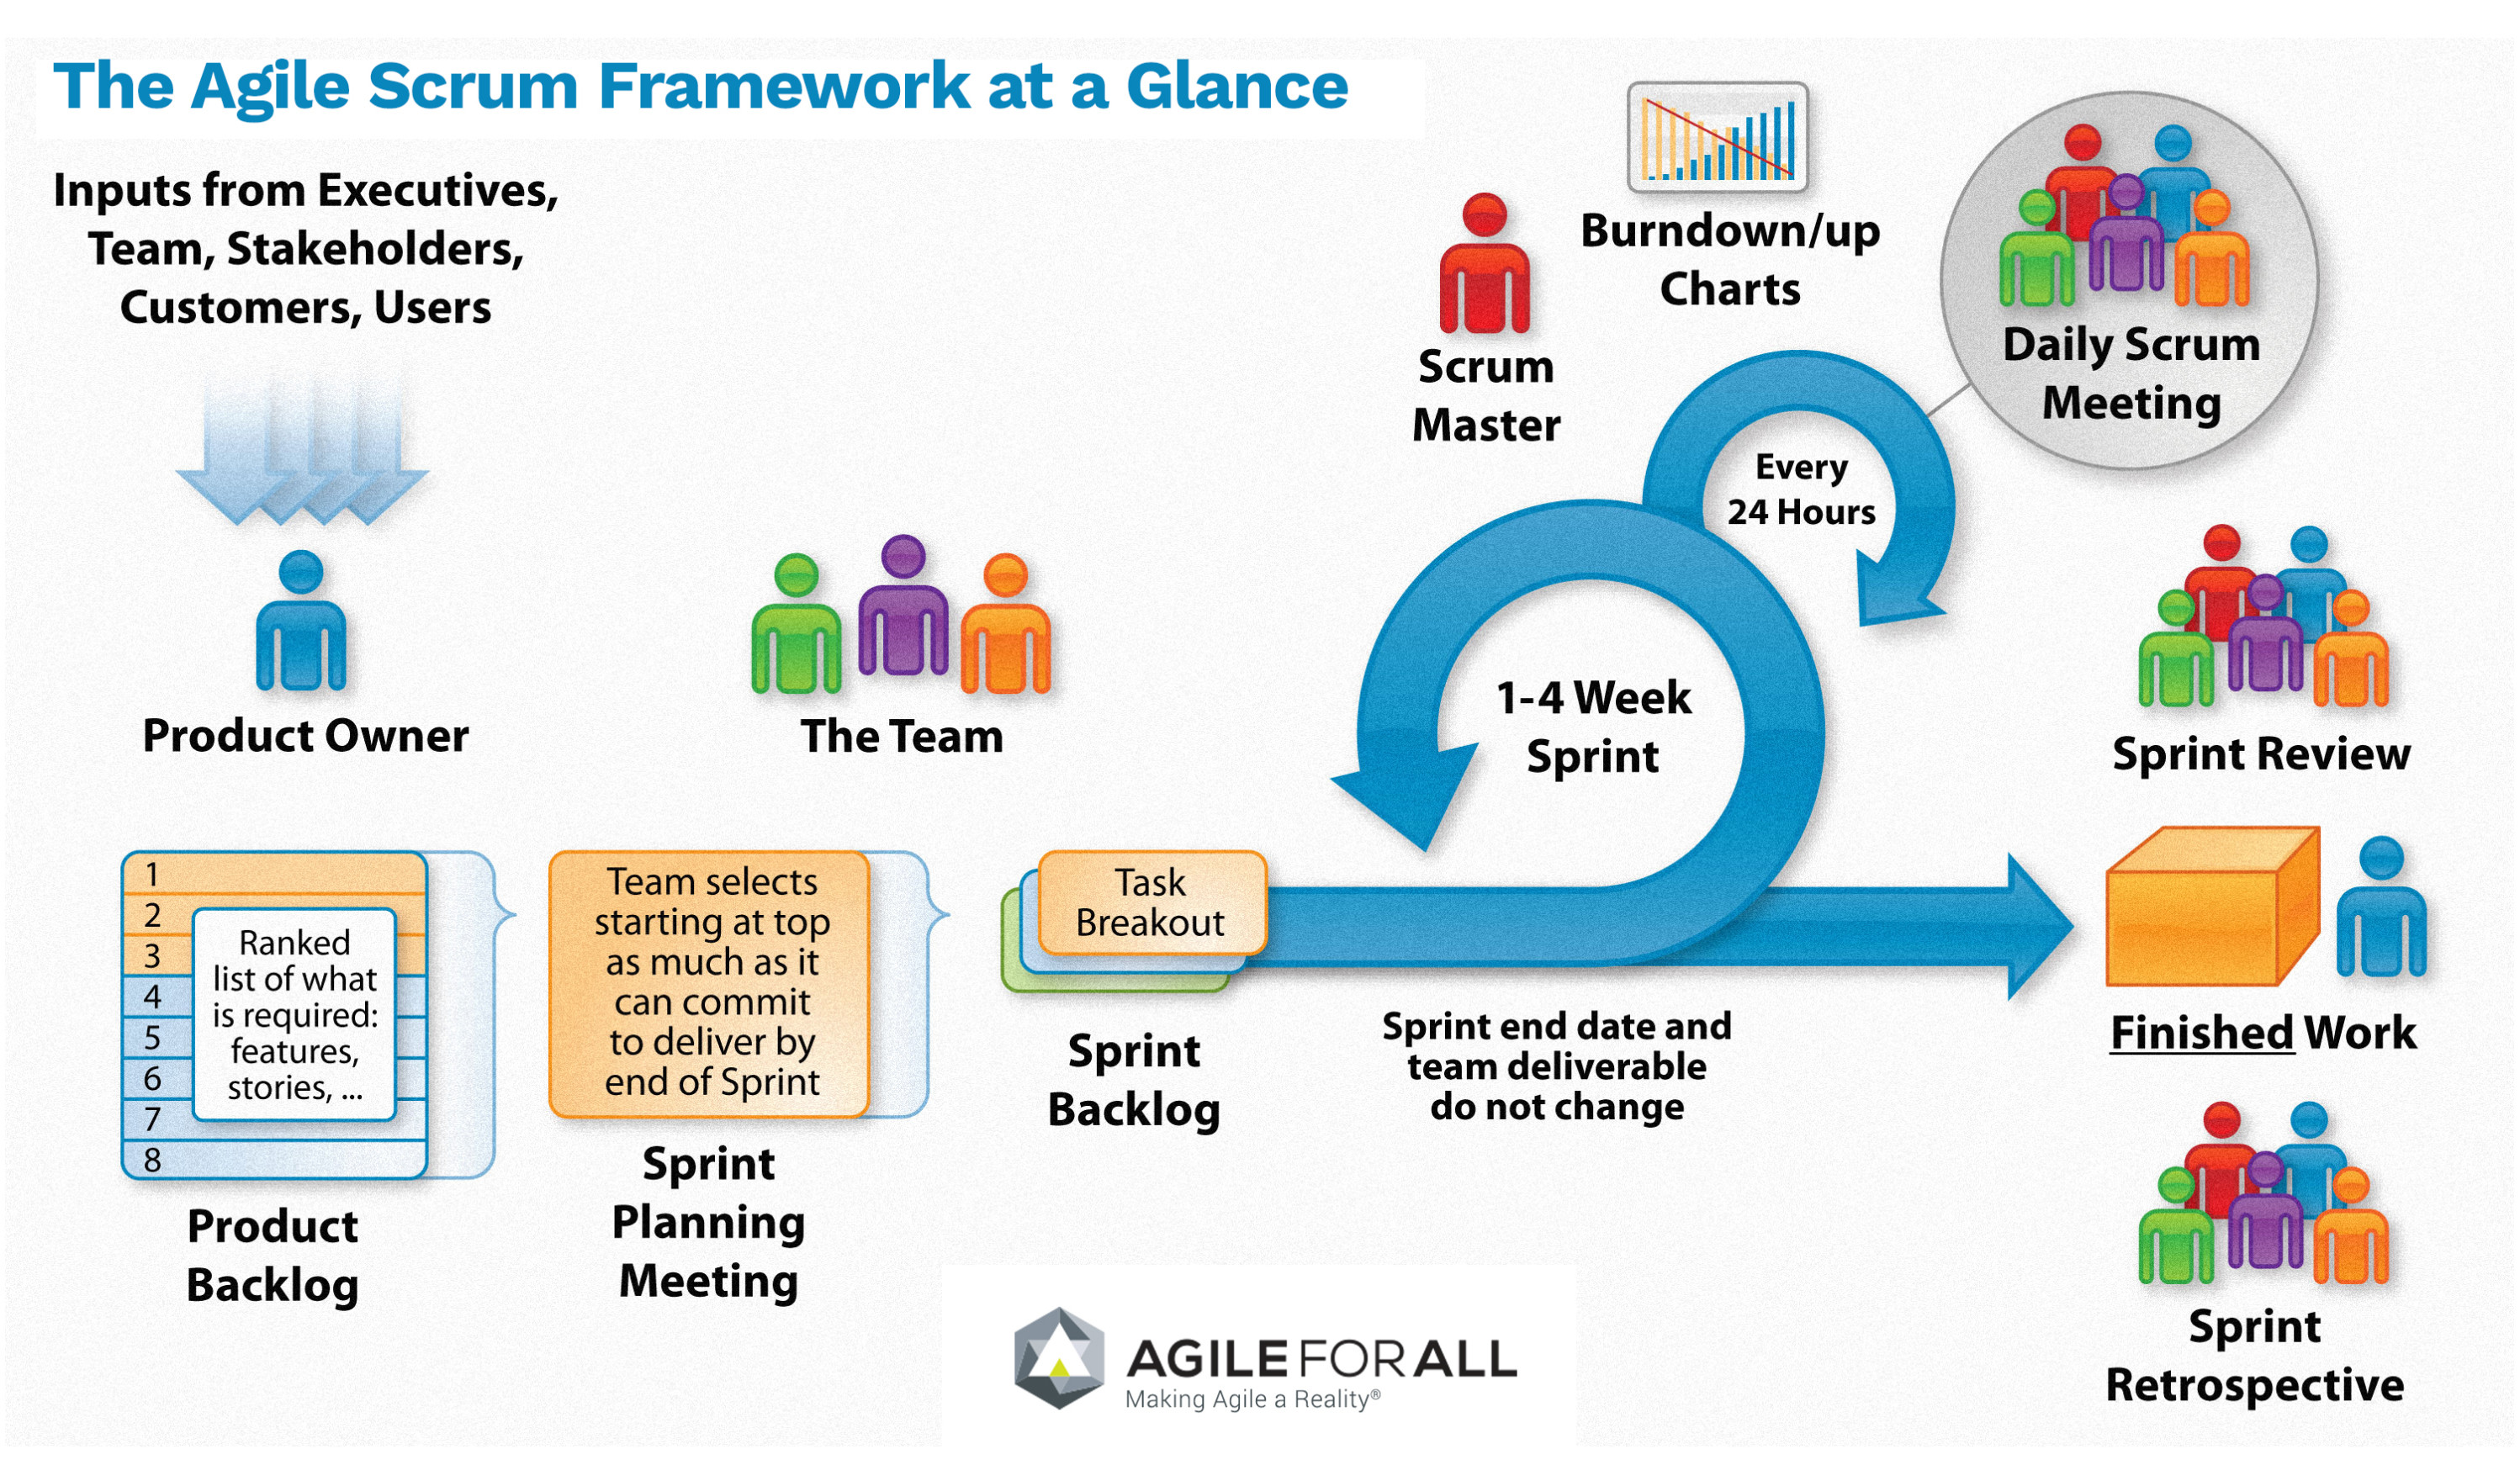 Scrum an agile software development framework vanderpol for Product development consulting